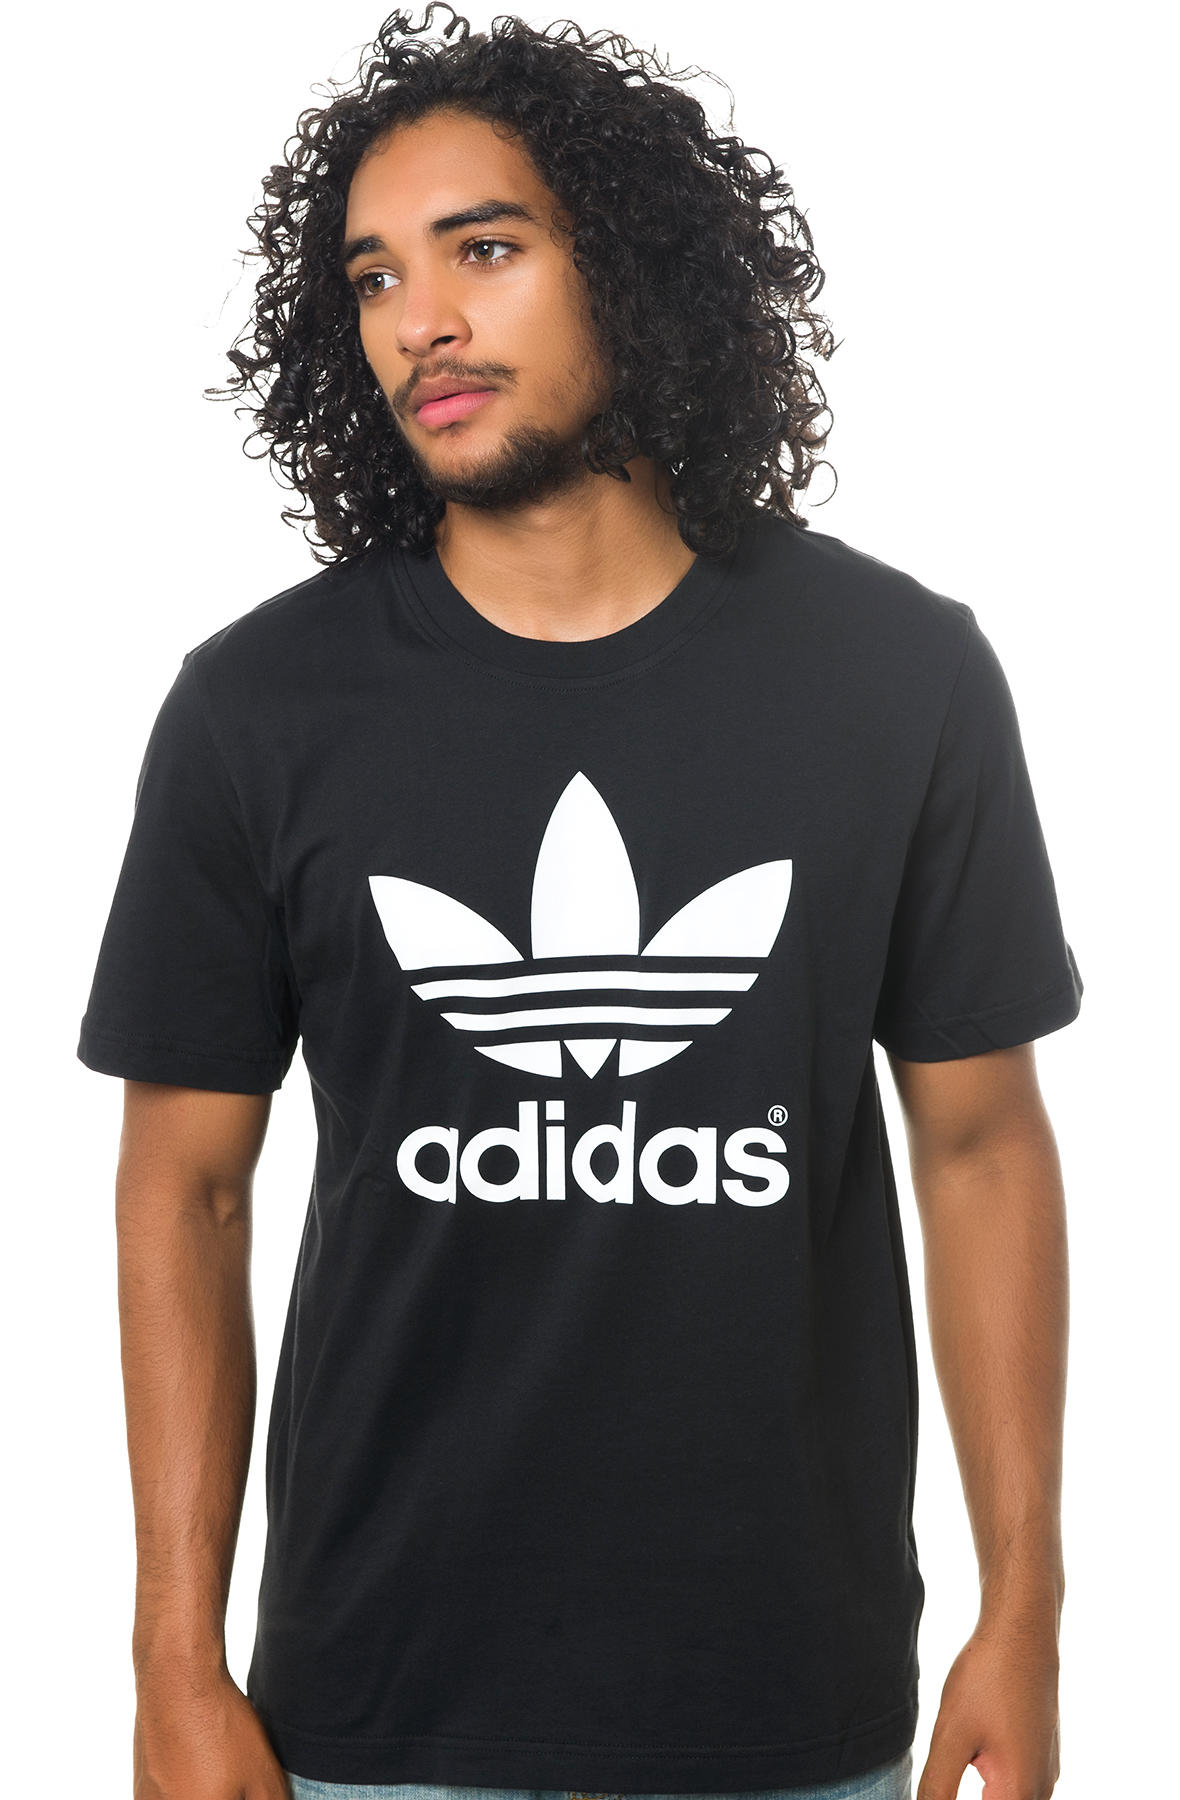 adidas Tee The Mirror Trefoil Logo in Black & White